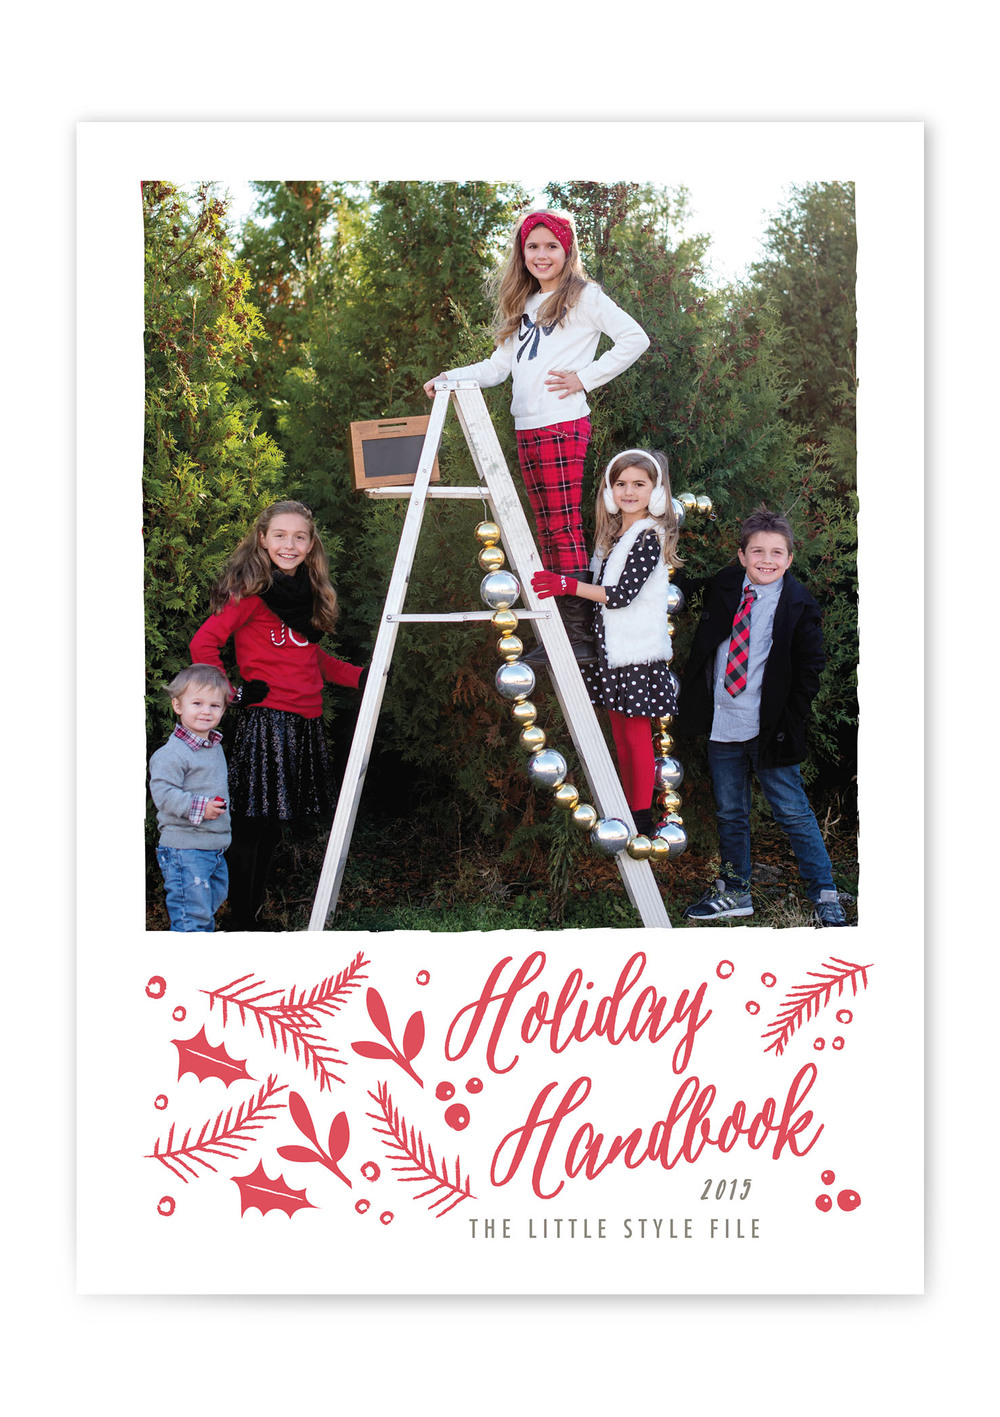 Holiday Handbook cover.jpg